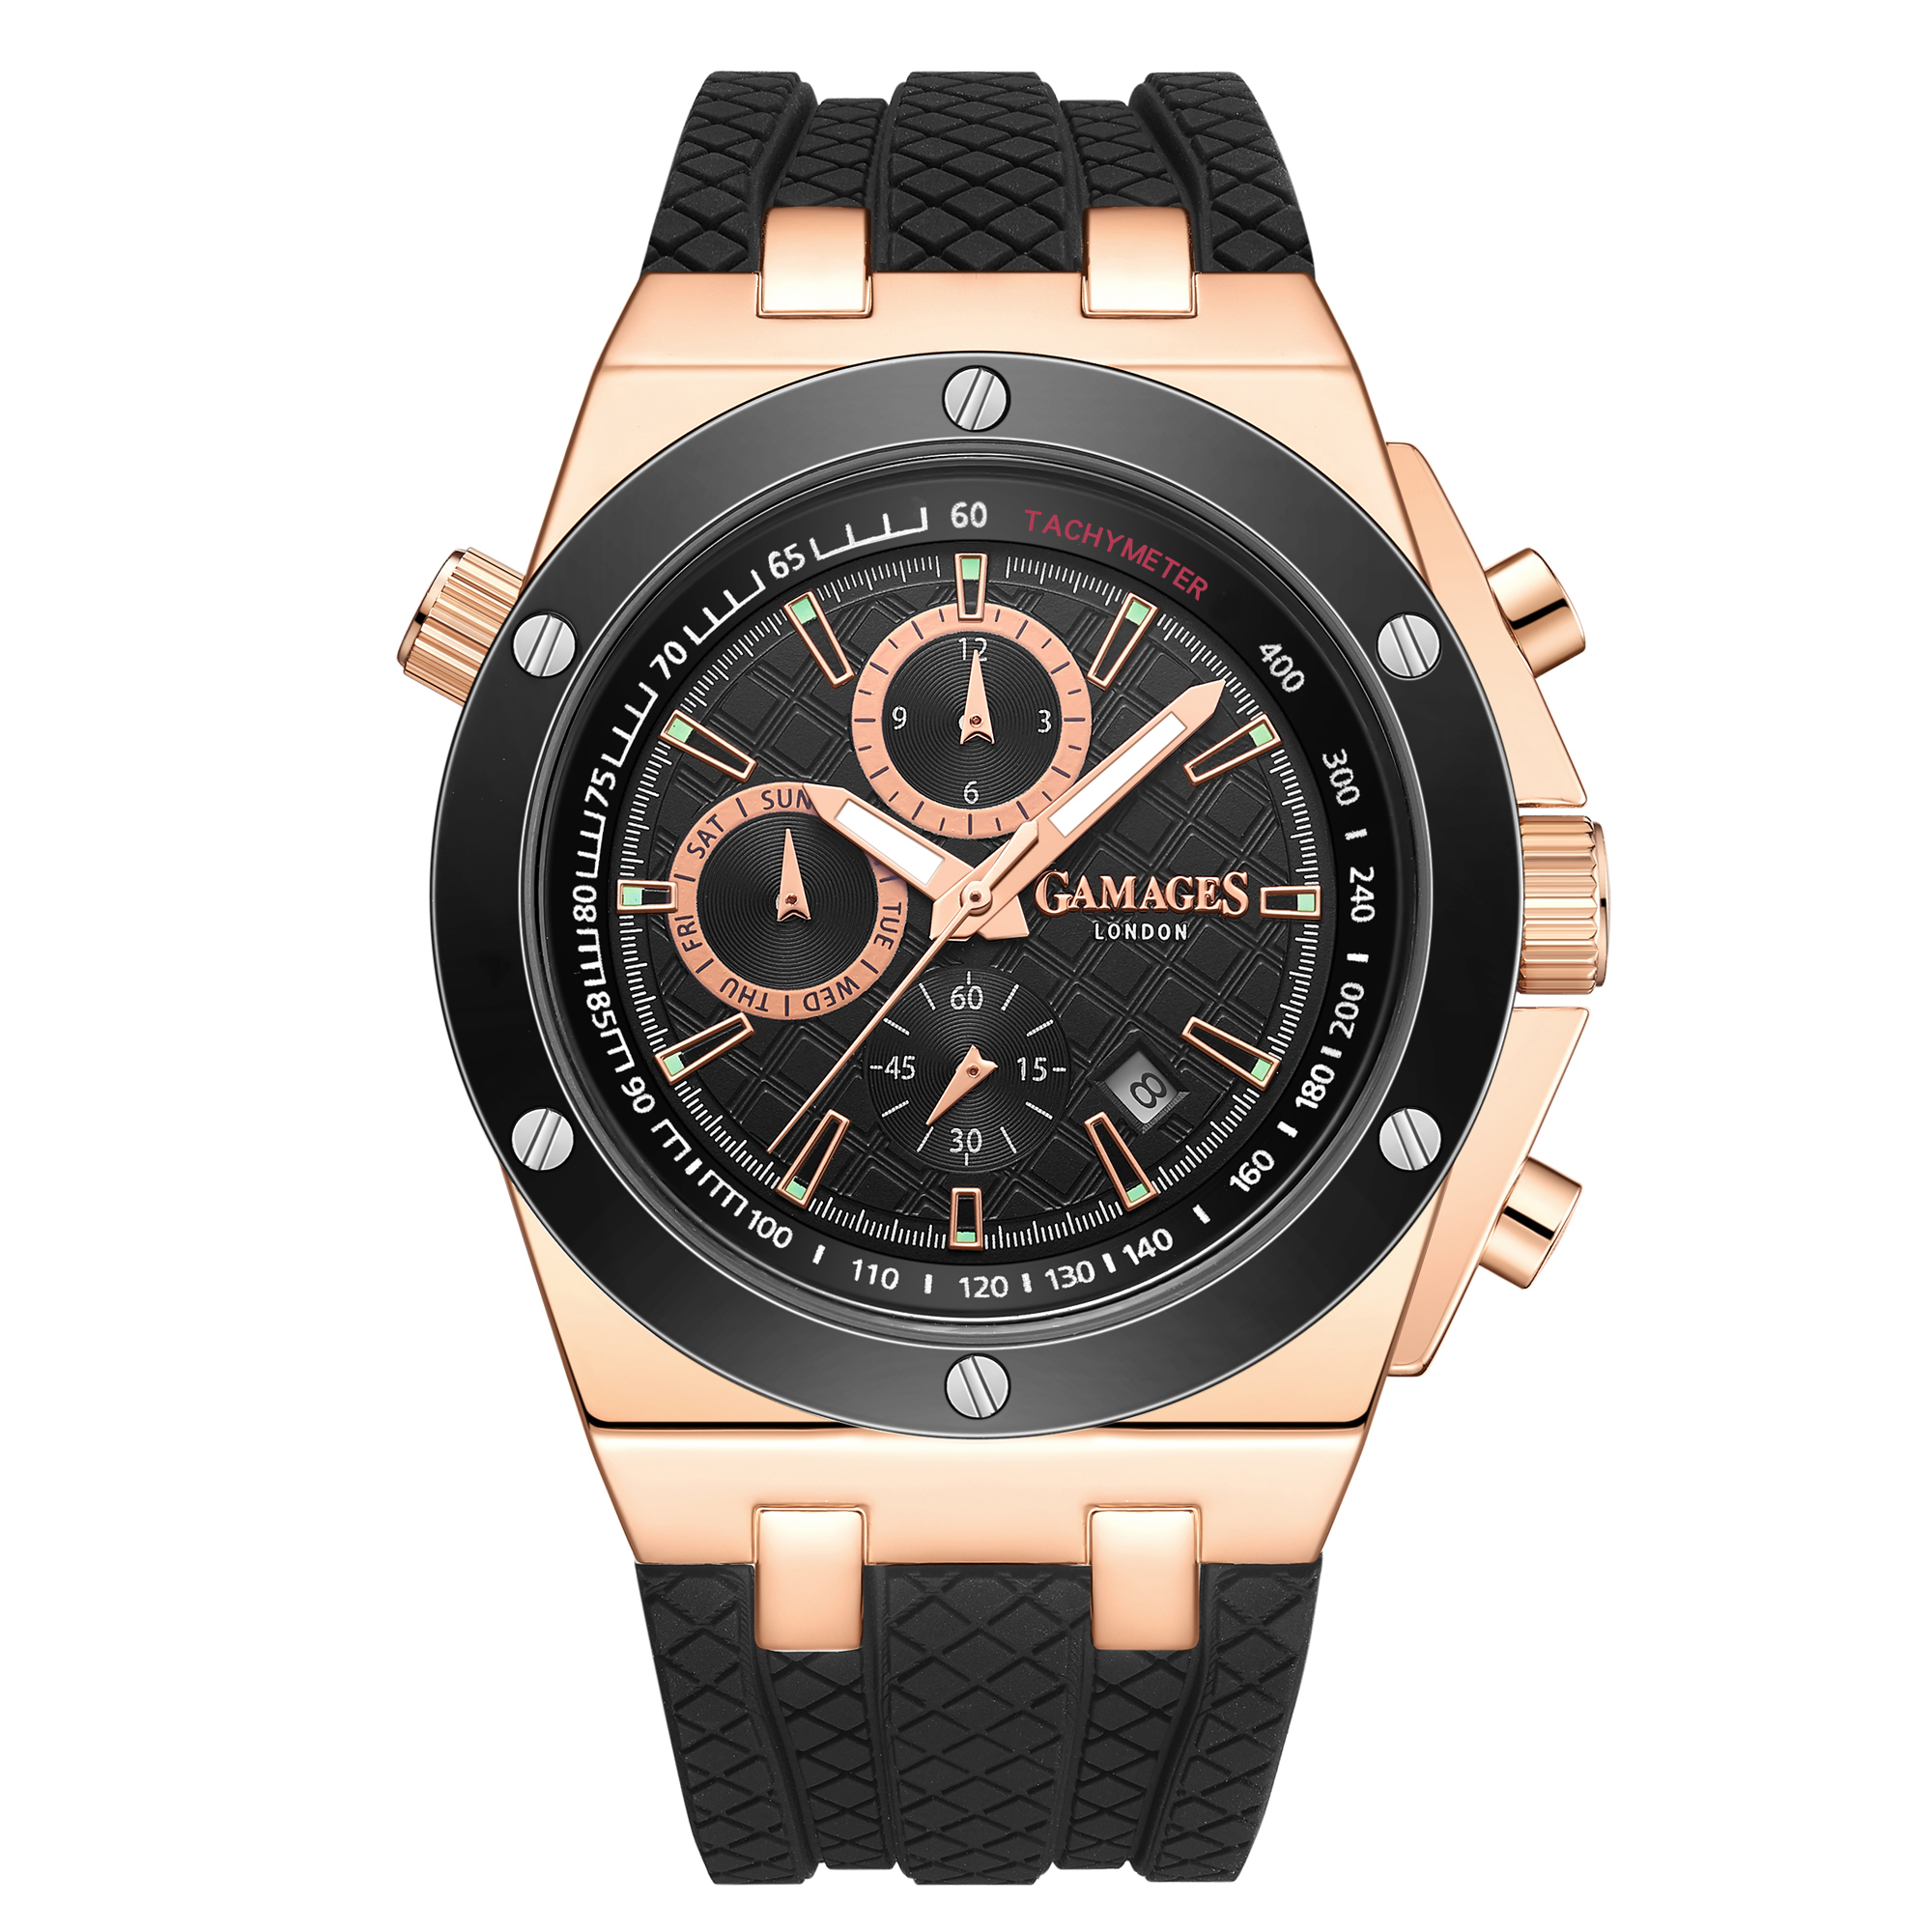 Limited Edition Hand Assembled GAMAGES Militant Automatic Rose – 5 Year Warranty & Free Delivery